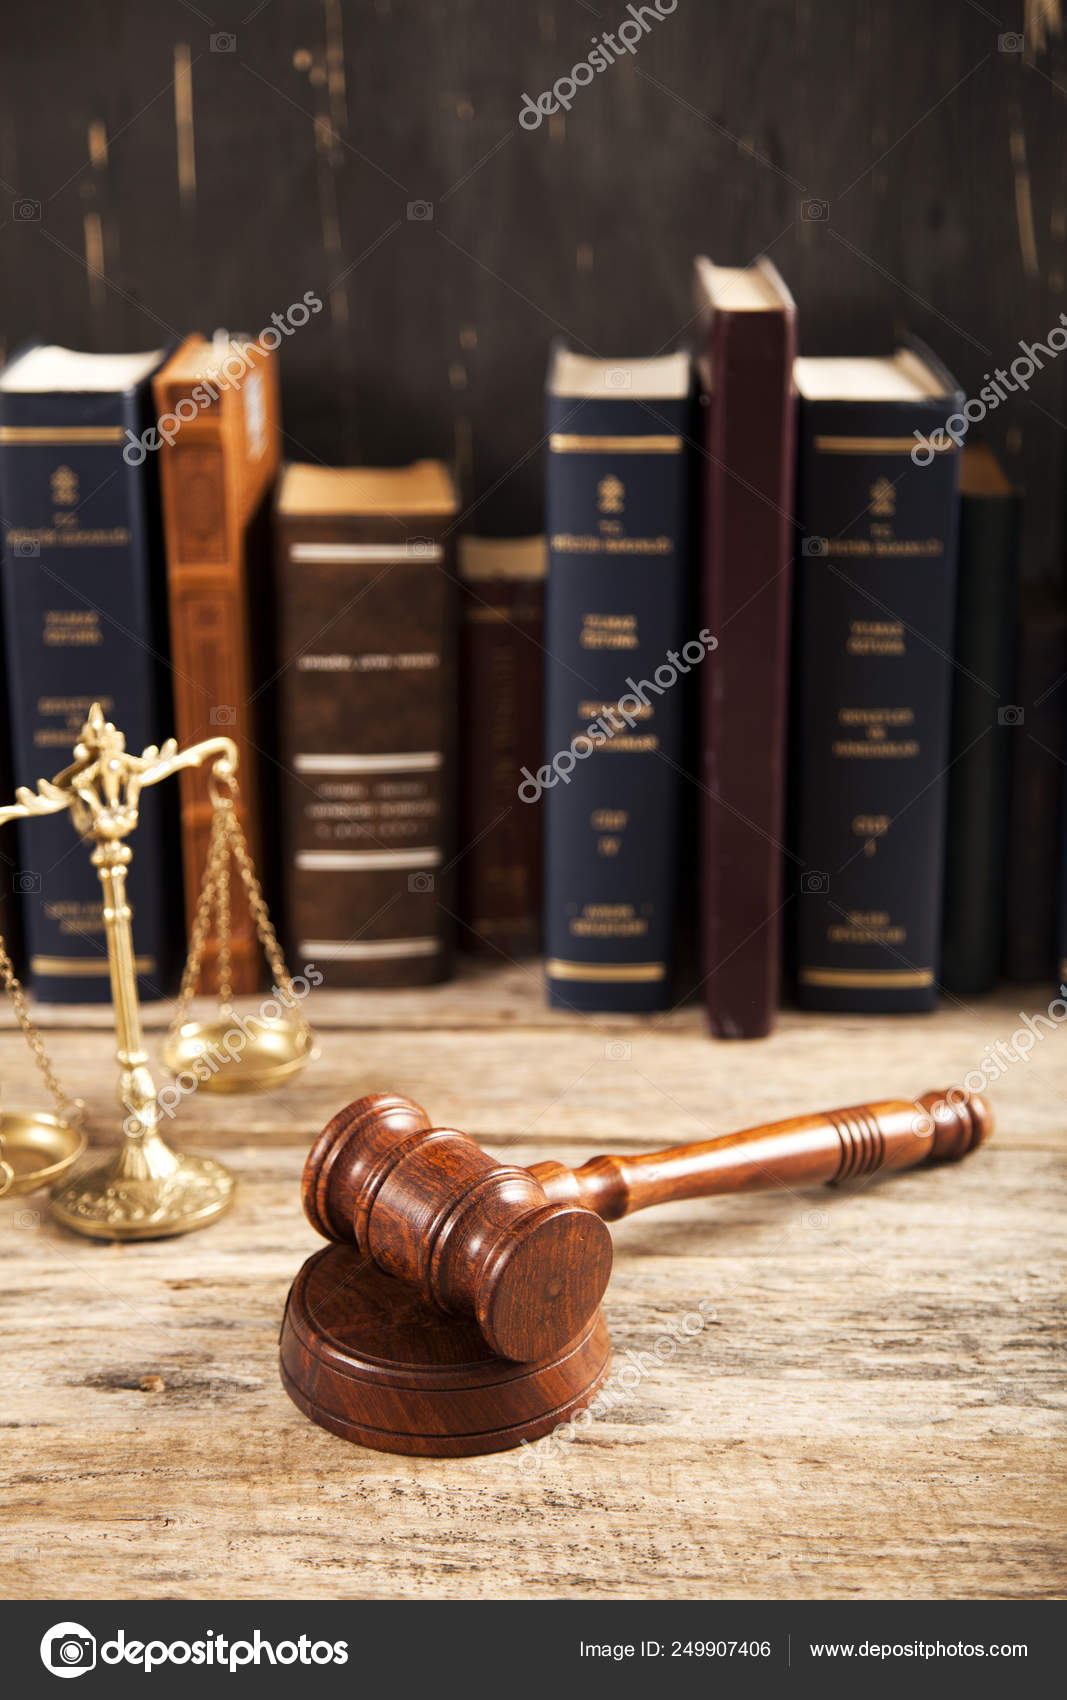 https tr depositphotos com 249907406 stock photo law justice concept html